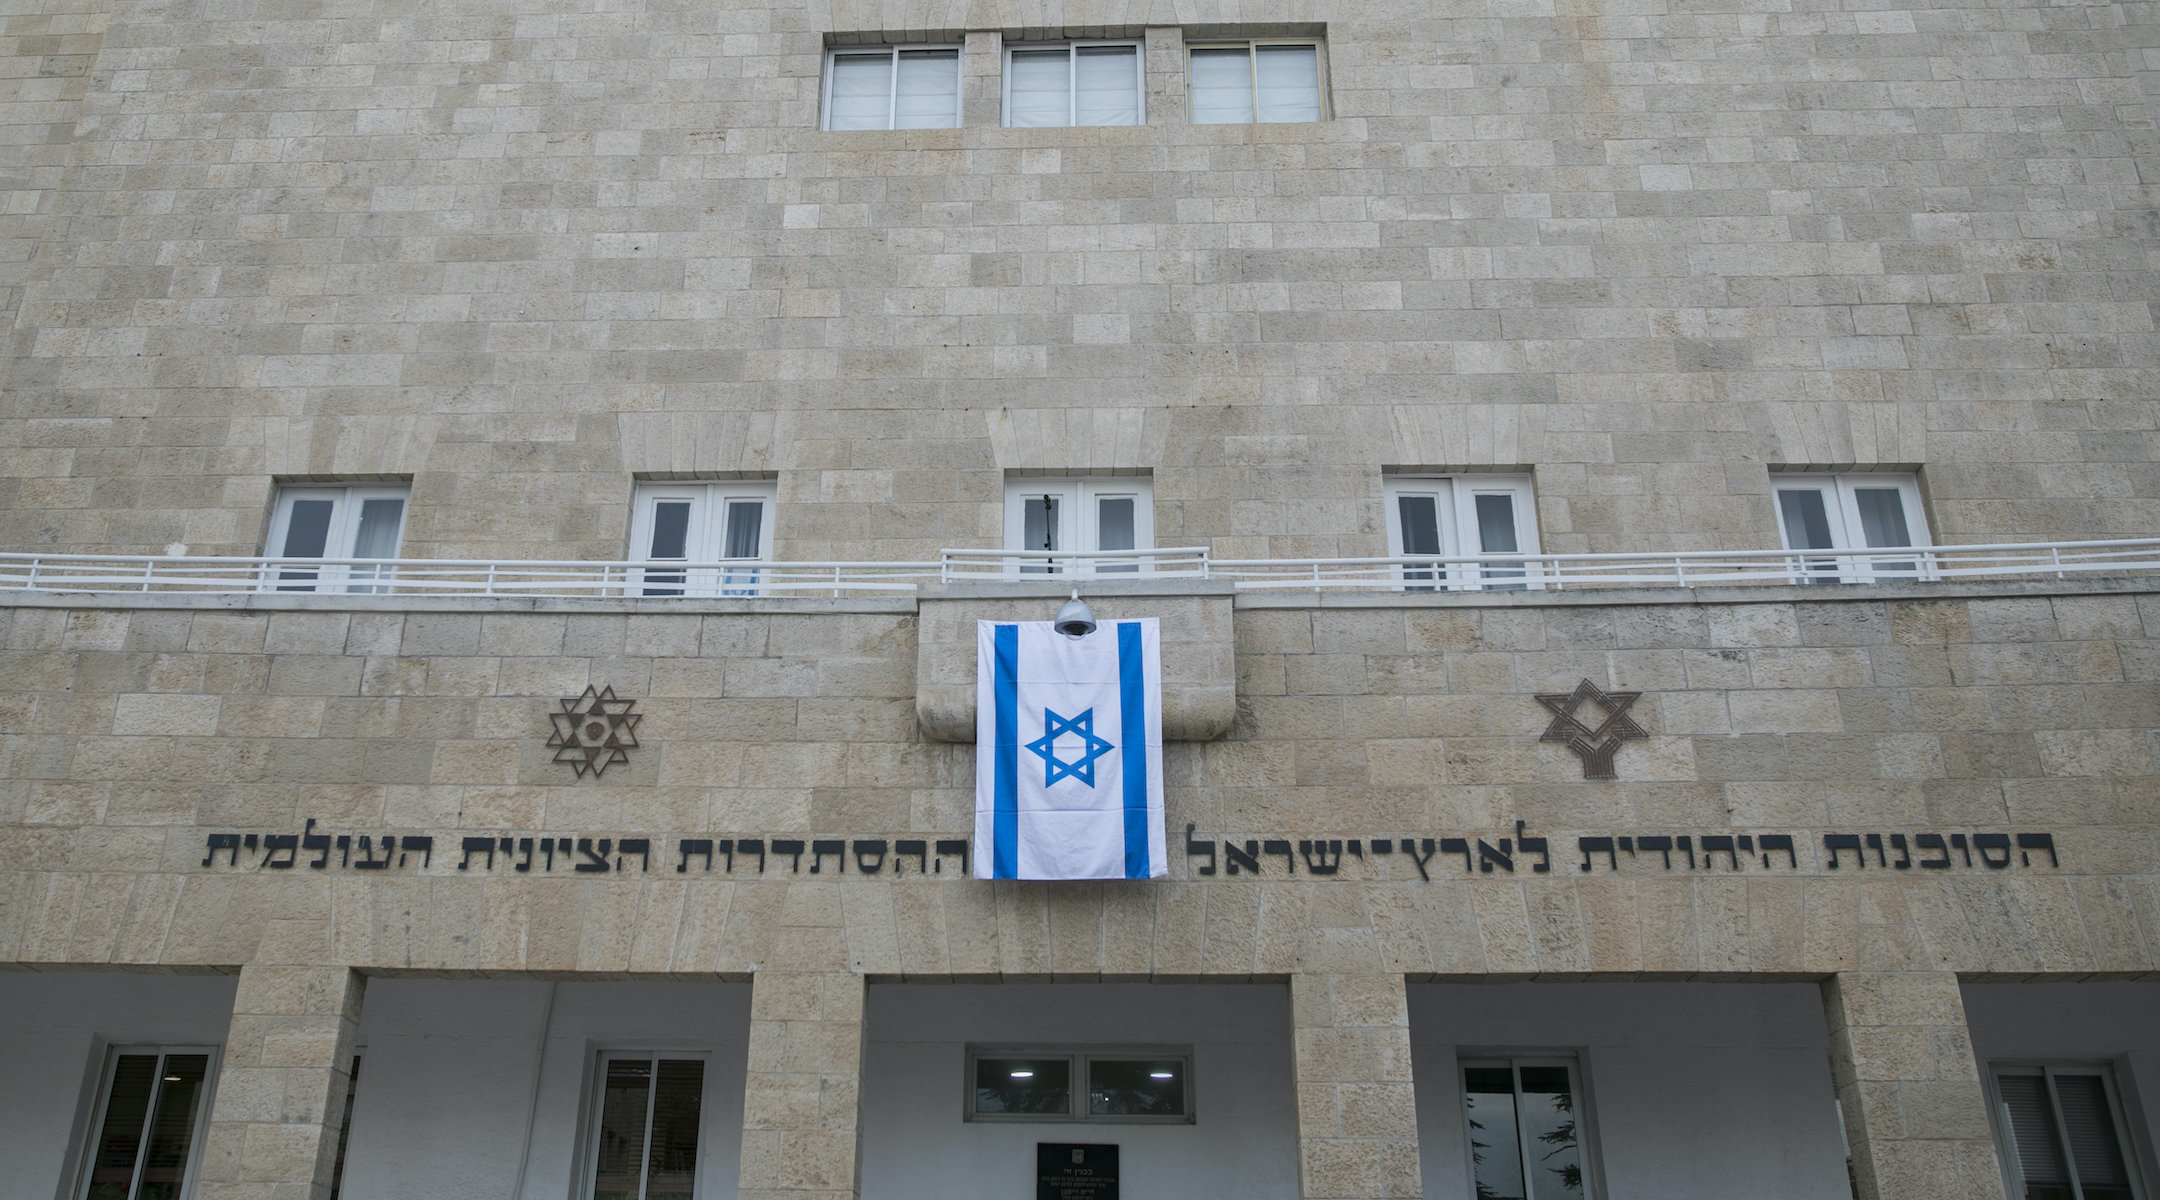 the facade of a plain limestone building with an Israeli flag hanging on it